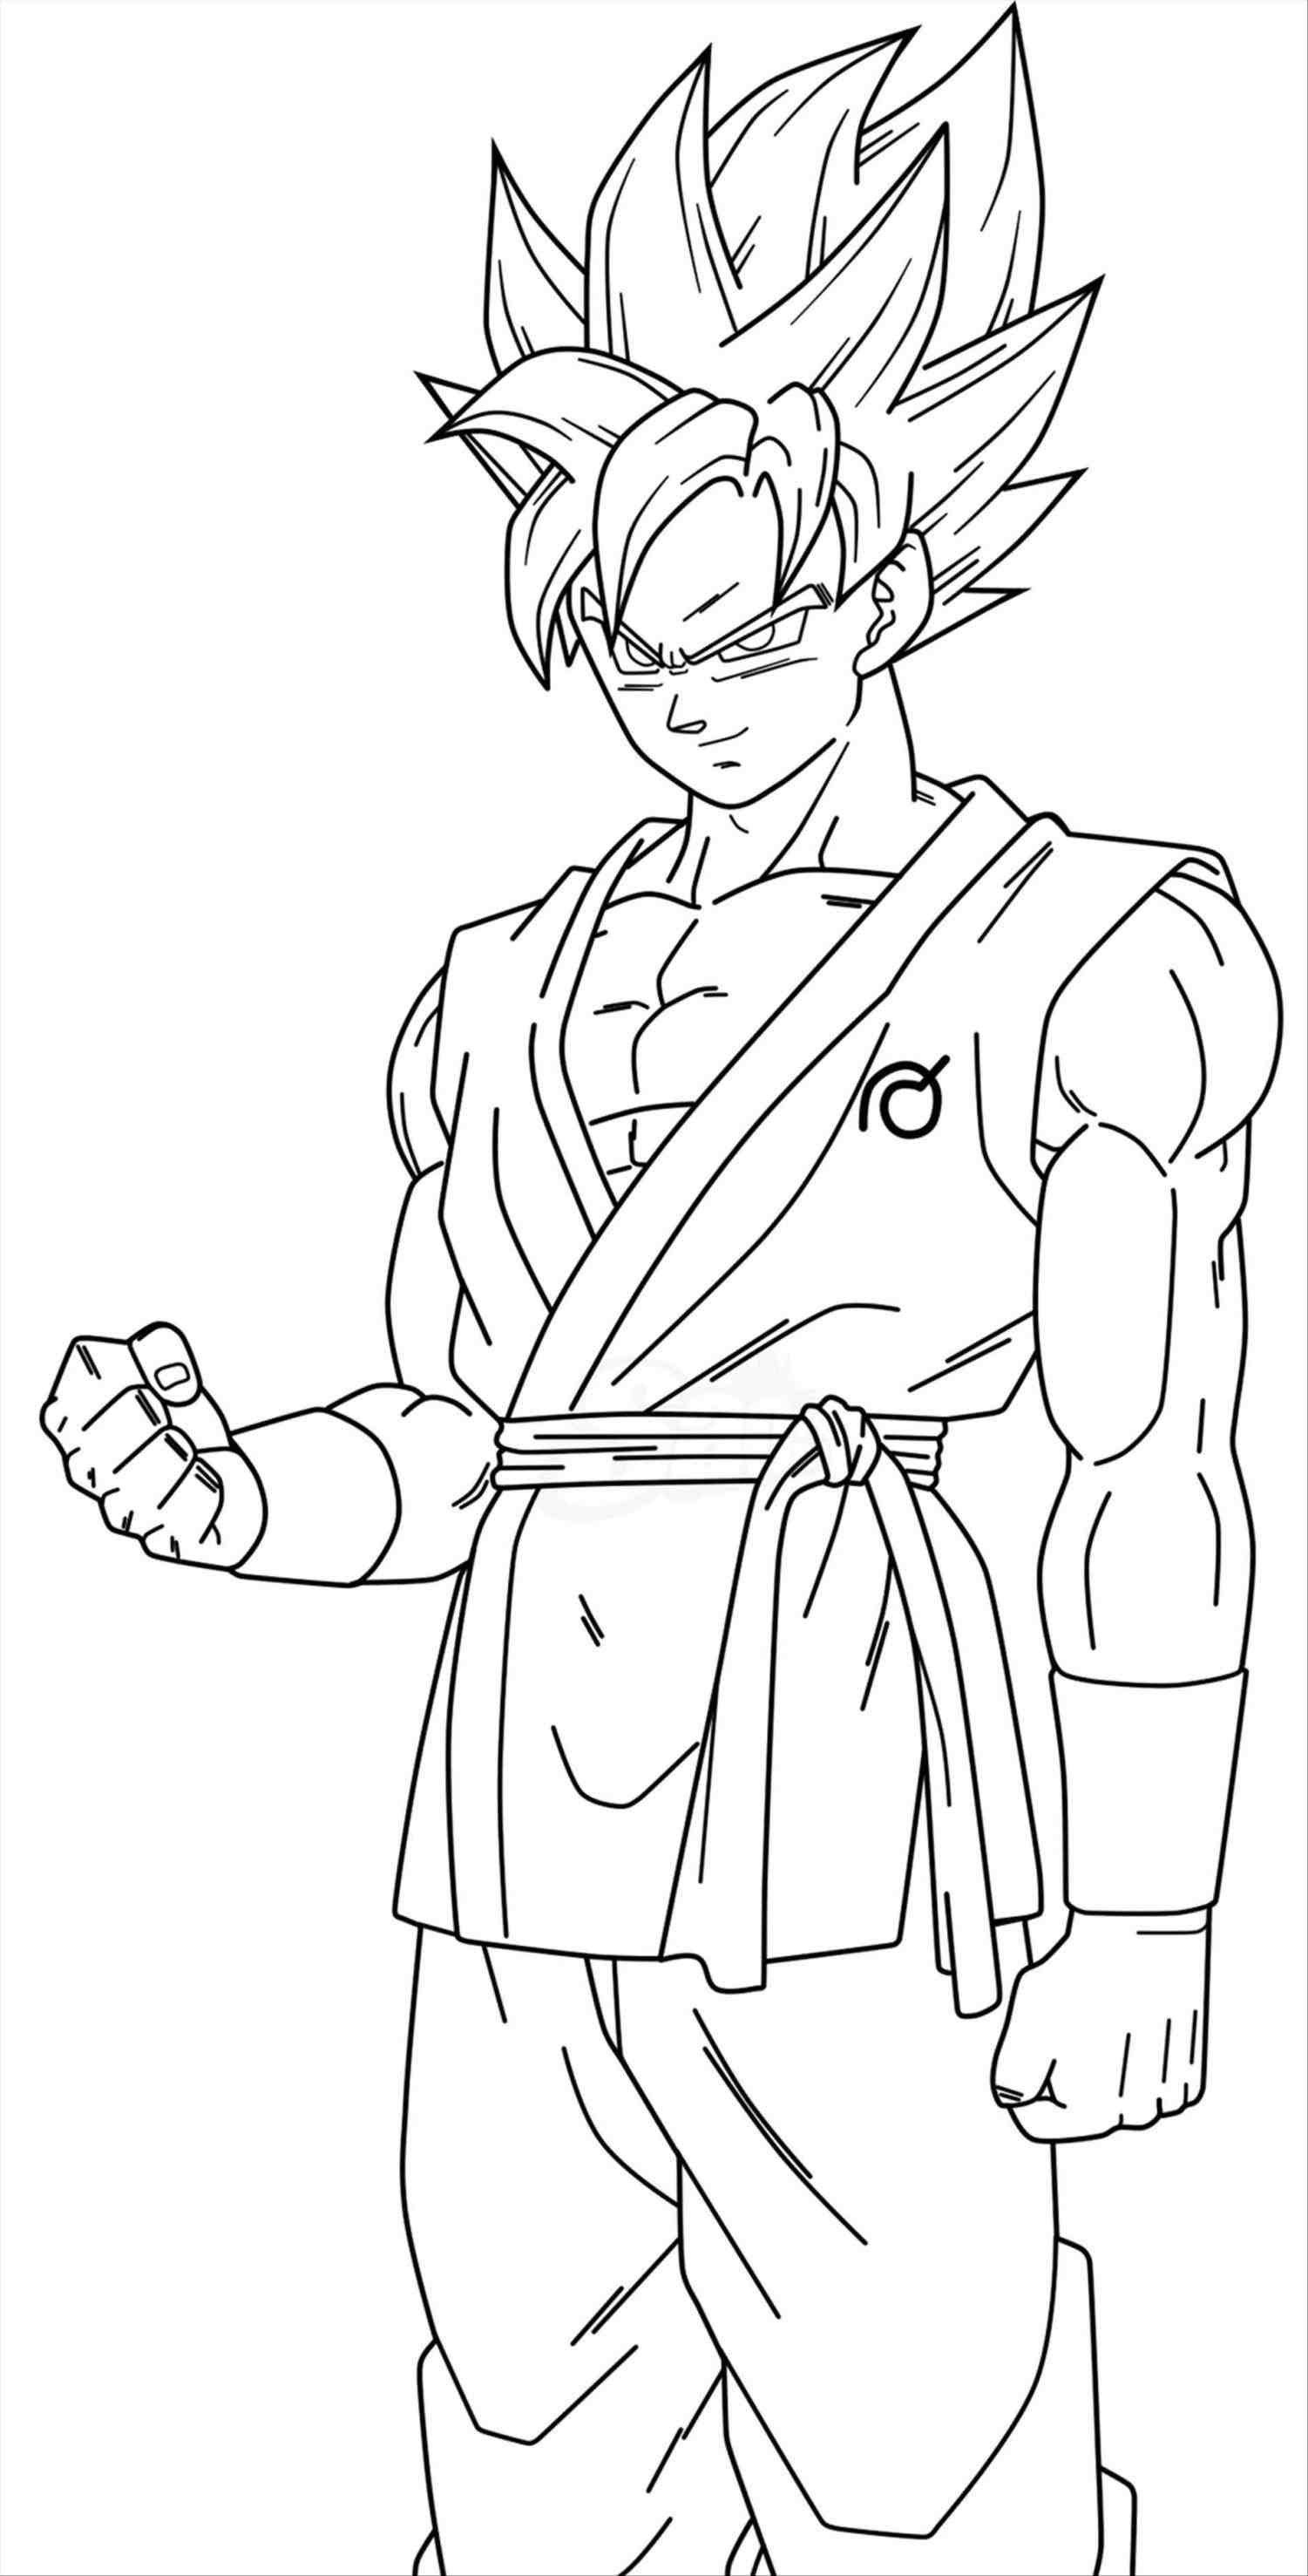 Promising Goku Super Saiyan 1 Coloring Pages Of Best Dragon Ball Z And Goku Desenho Desenhos Dragonball Desenhos De Anime